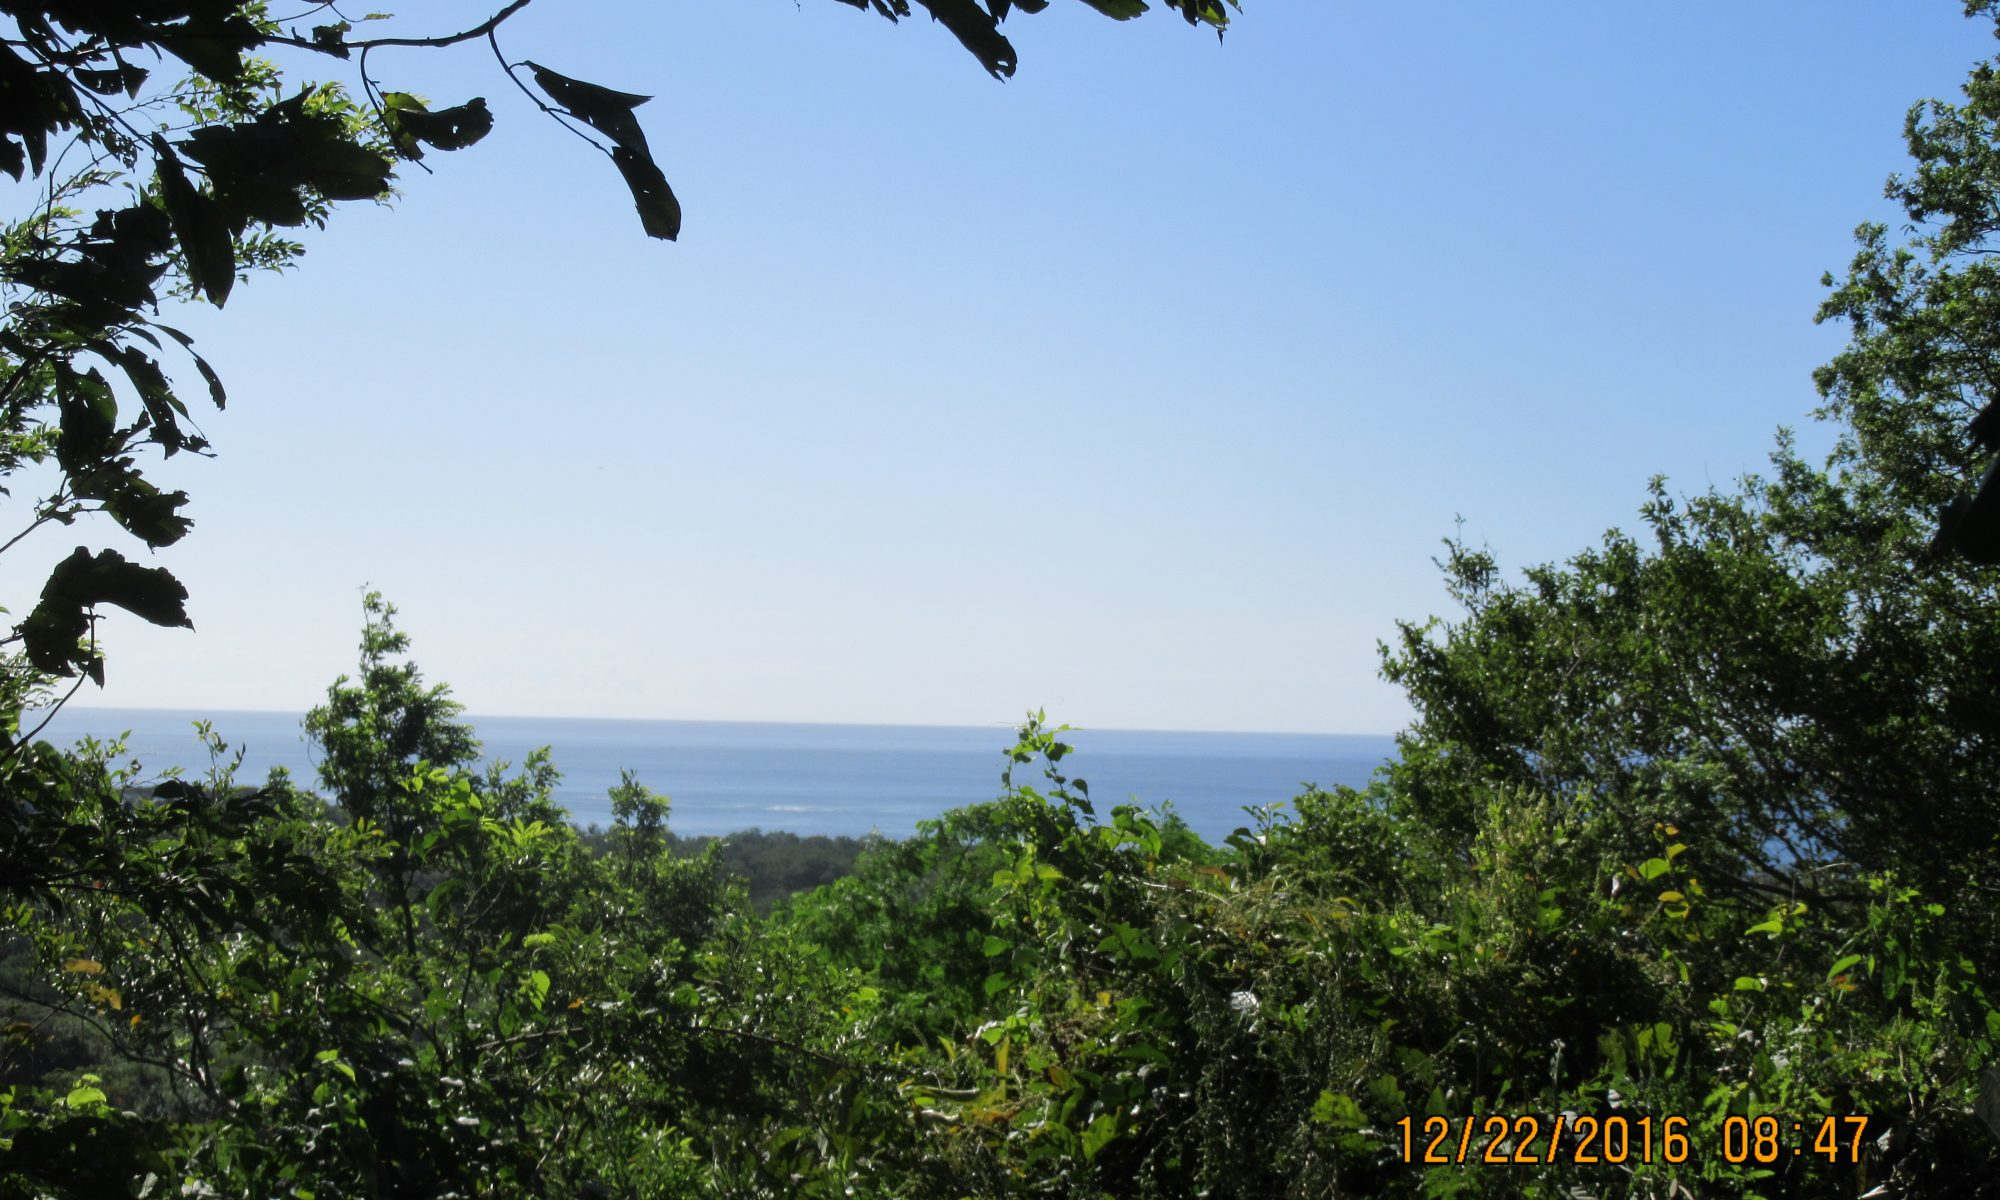 Property Costa Rica for sale